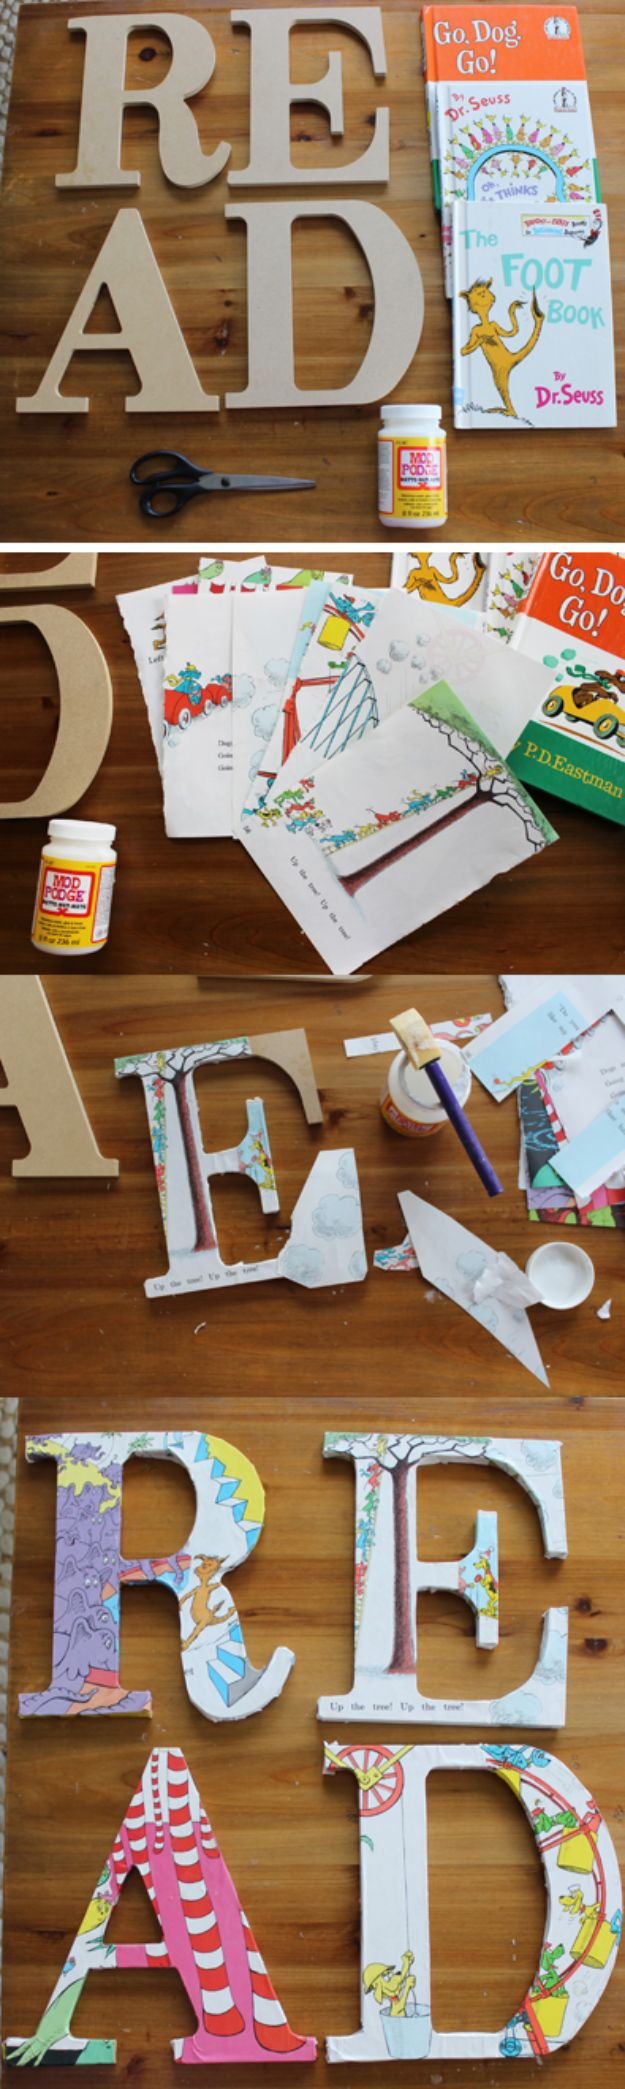 DIY Wall Letters and Word Signs - DIY Decoupage Dr. Seuss Read Sign for Children's Book Nook - Initials Wall Art for Creative Home Decor Ideas - Cool Architectural Letter Projects and Wall Art Tutorials for Living Room Decor, Bedroom Ideas. Girl or Boy Nursery. Paint, Glitter, String Art, Easy Cardboard and Rustic Wooden Ideas - DIY Projects and Crafts by DIY JOY #diysigns #diyideas #diyhomedecor